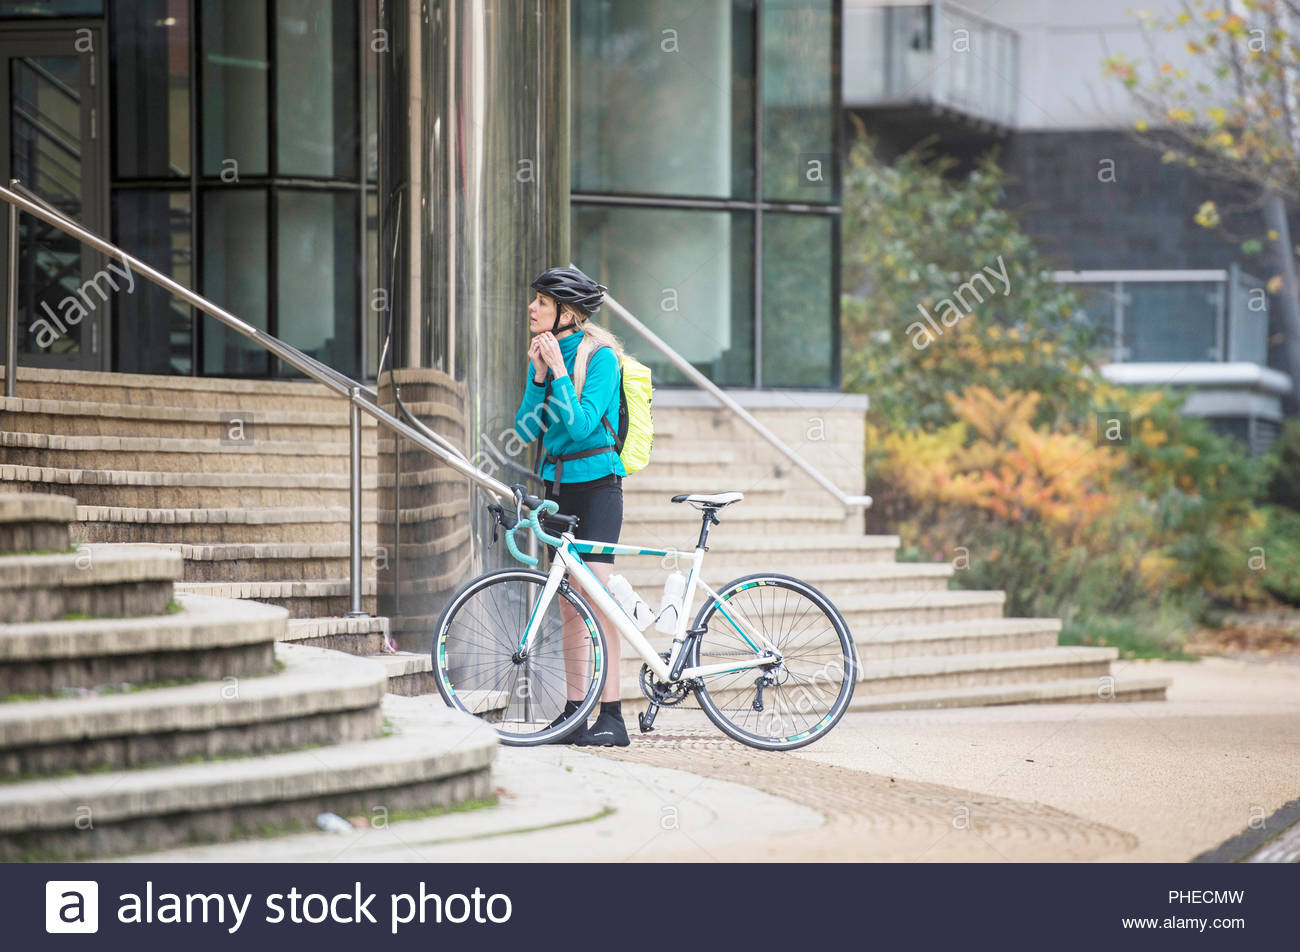 Woman removing helmet as she arrives to work by bicycle - Stock Image